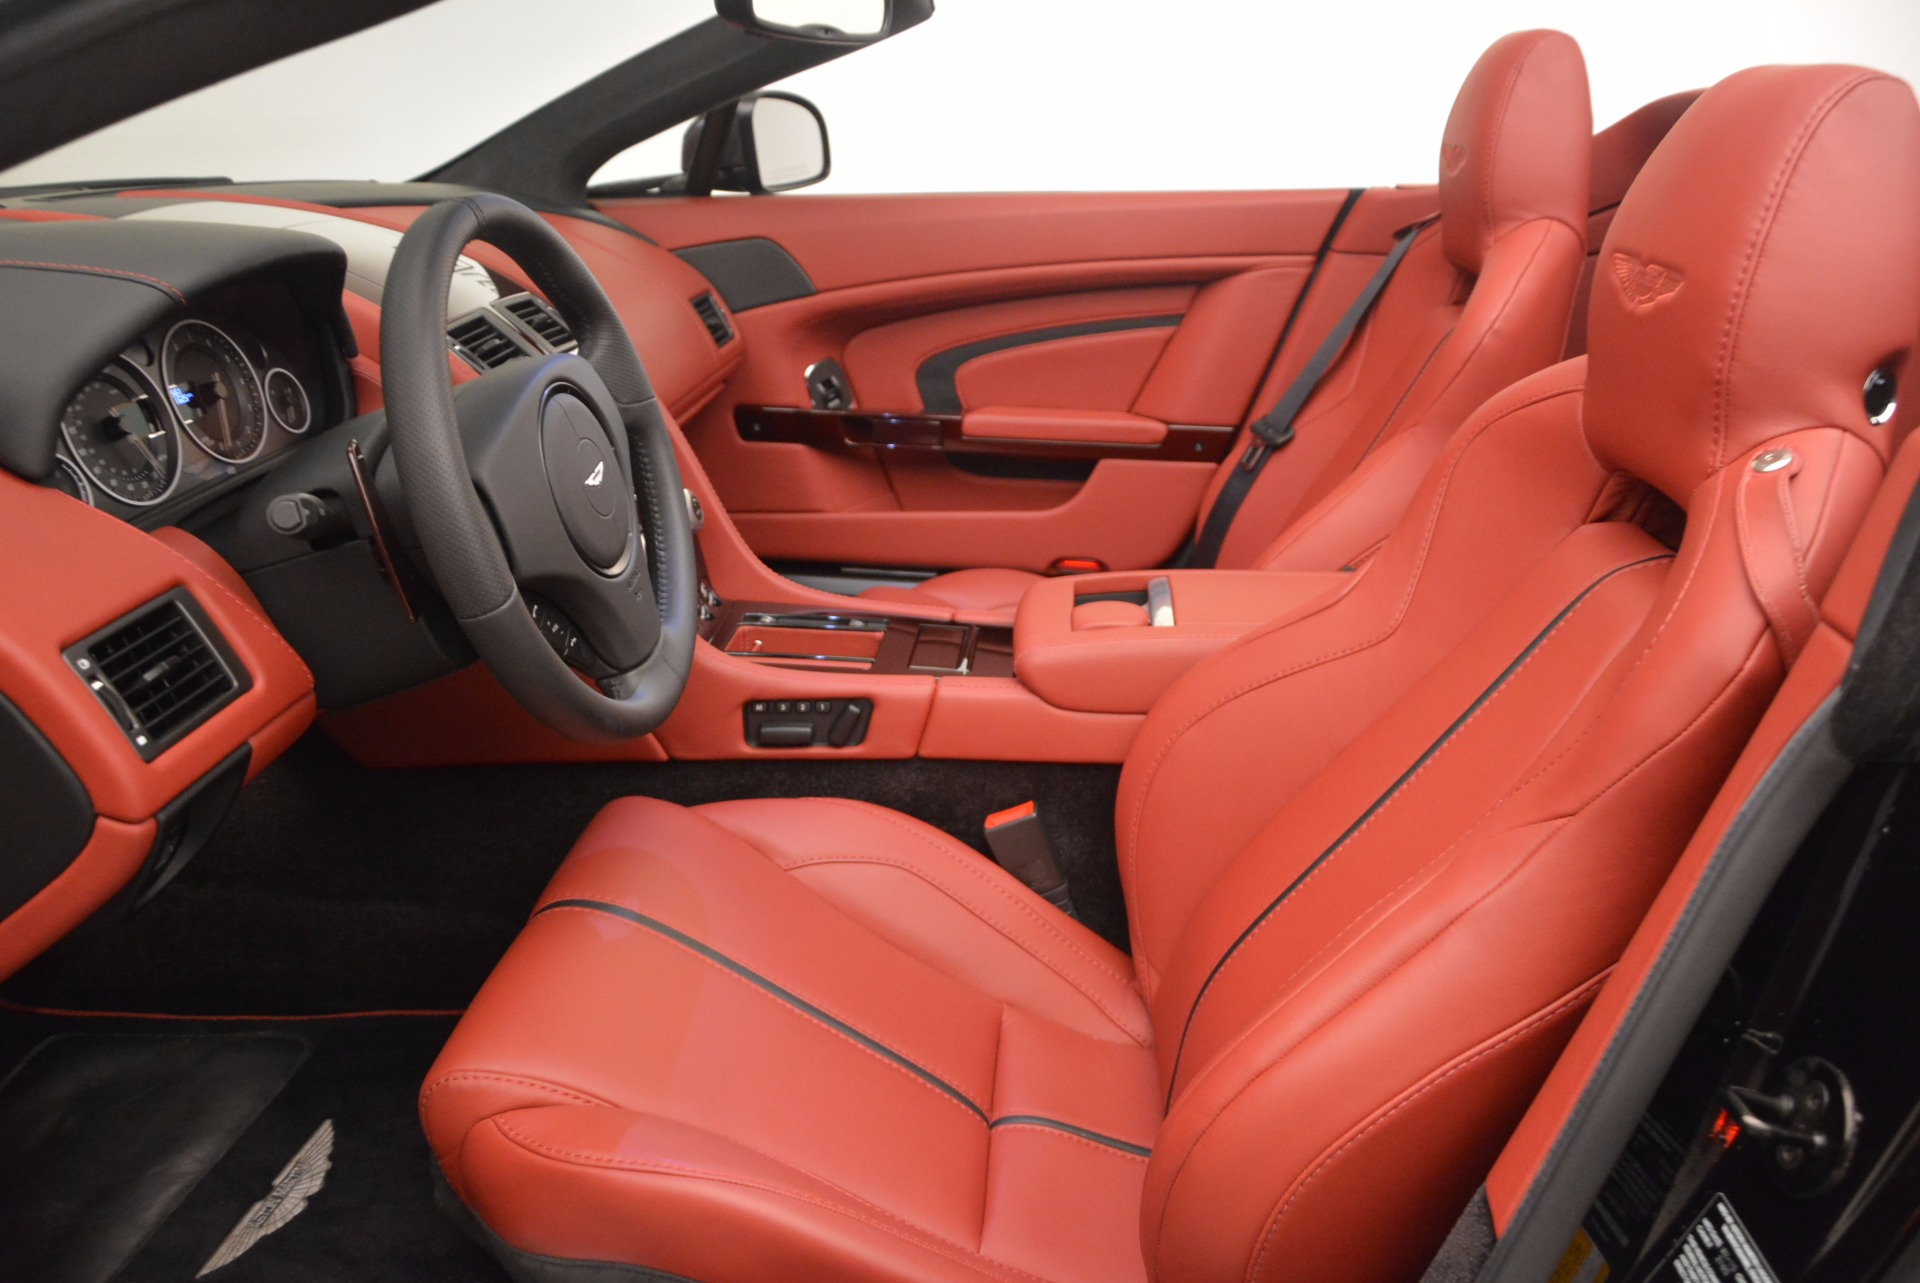 Used 2015 Aston Martin V12 Vantage S Roadster For Sale In Westport, CT 1335_p20